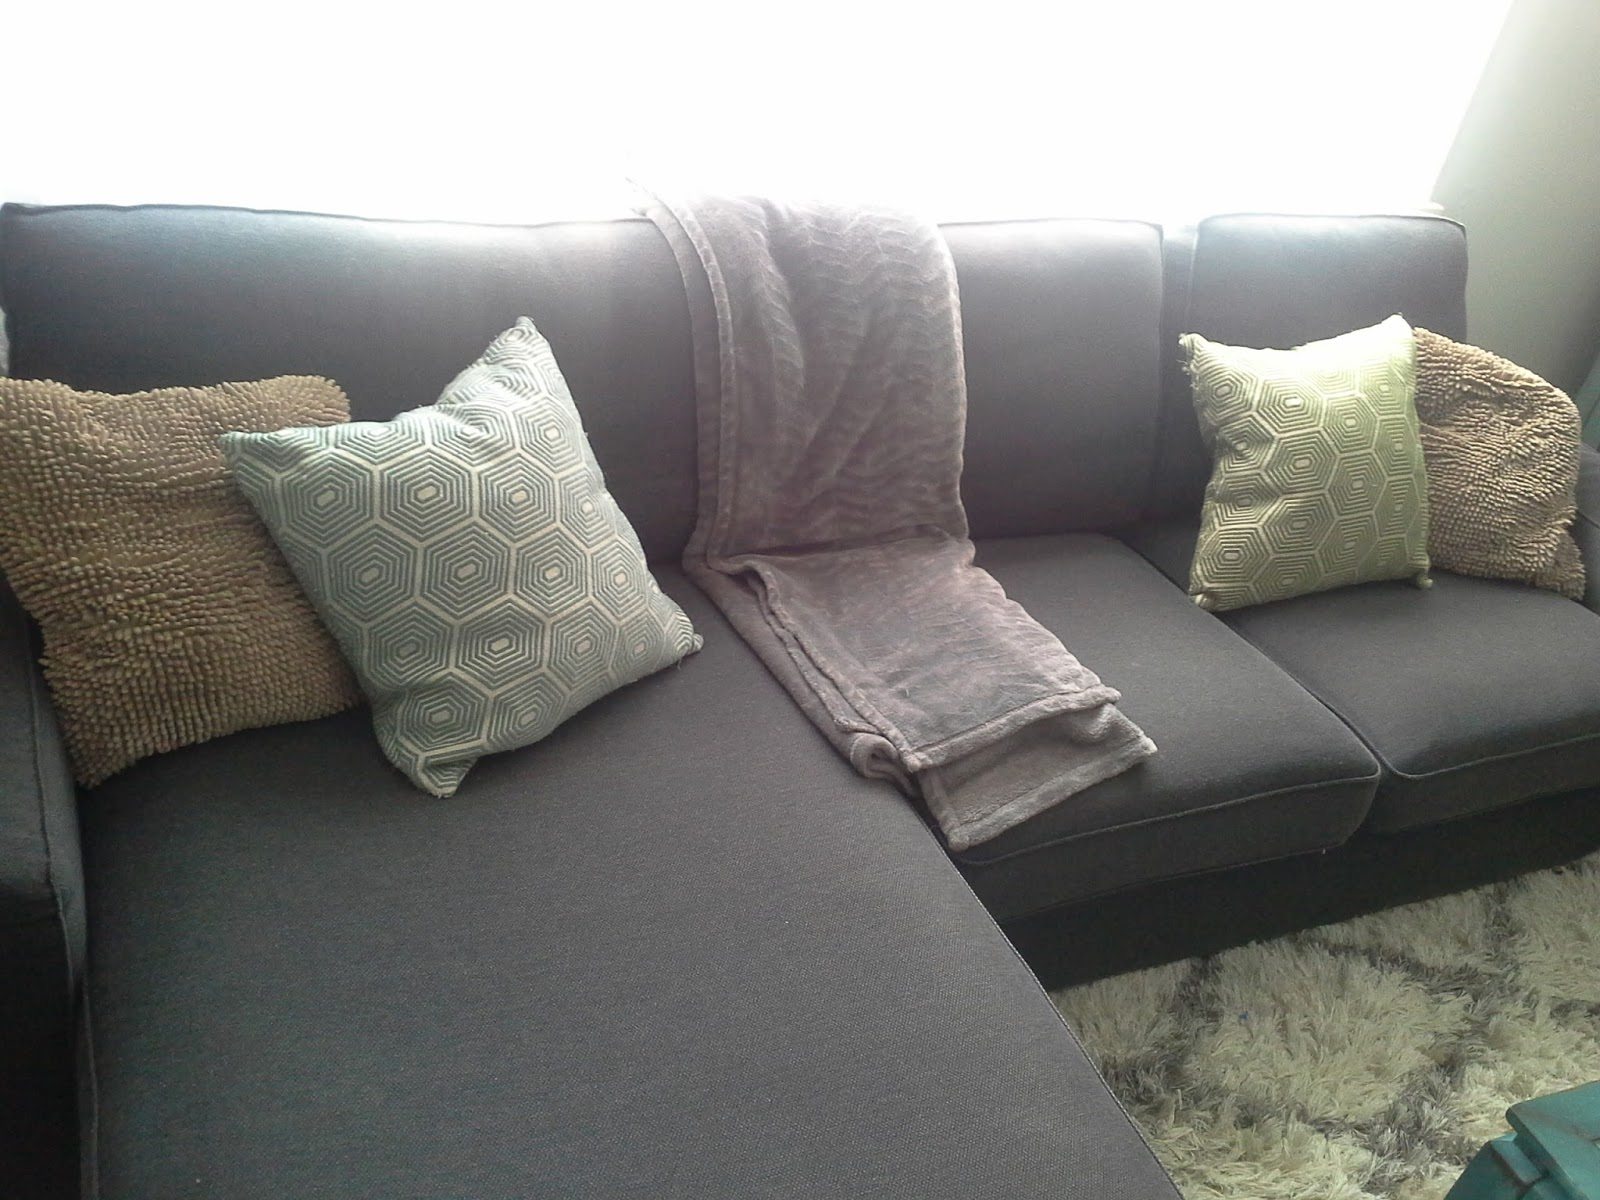 Ikea Kivik Loveseat Chaise Combination Living Room Photo Gallery